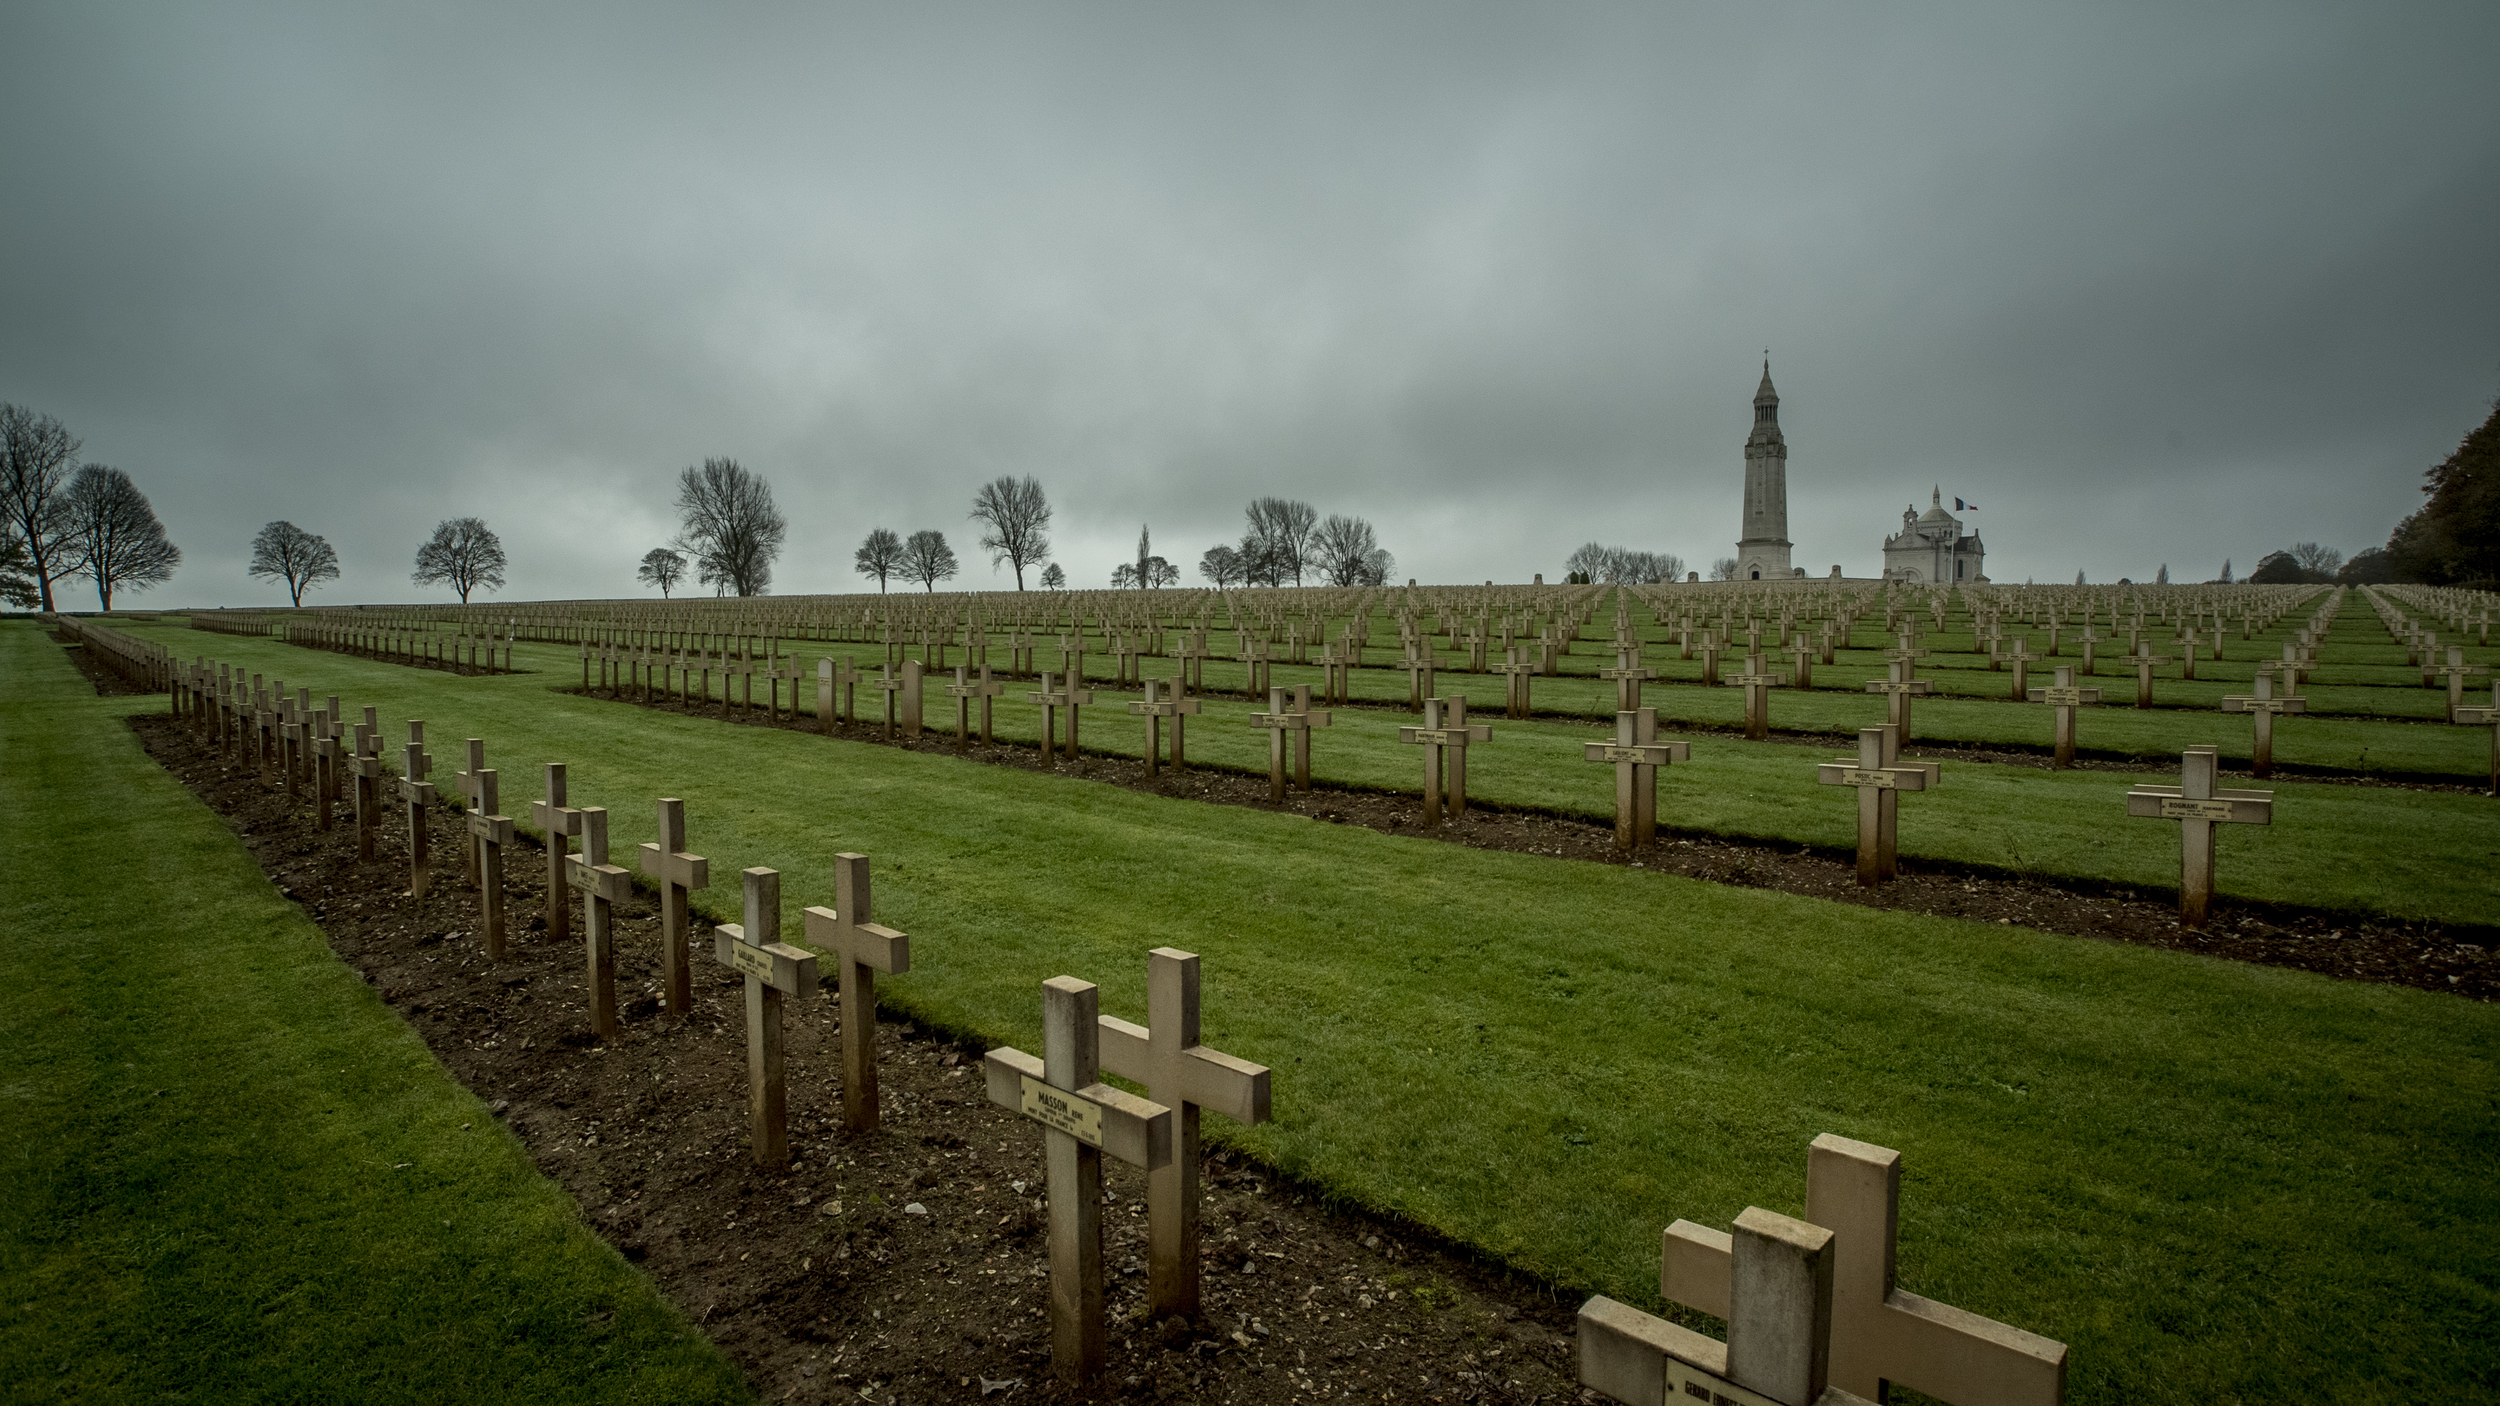 French WWI cemetery, Notre Dame de Lorette, near Arras, France  All photos by Mathew Knight